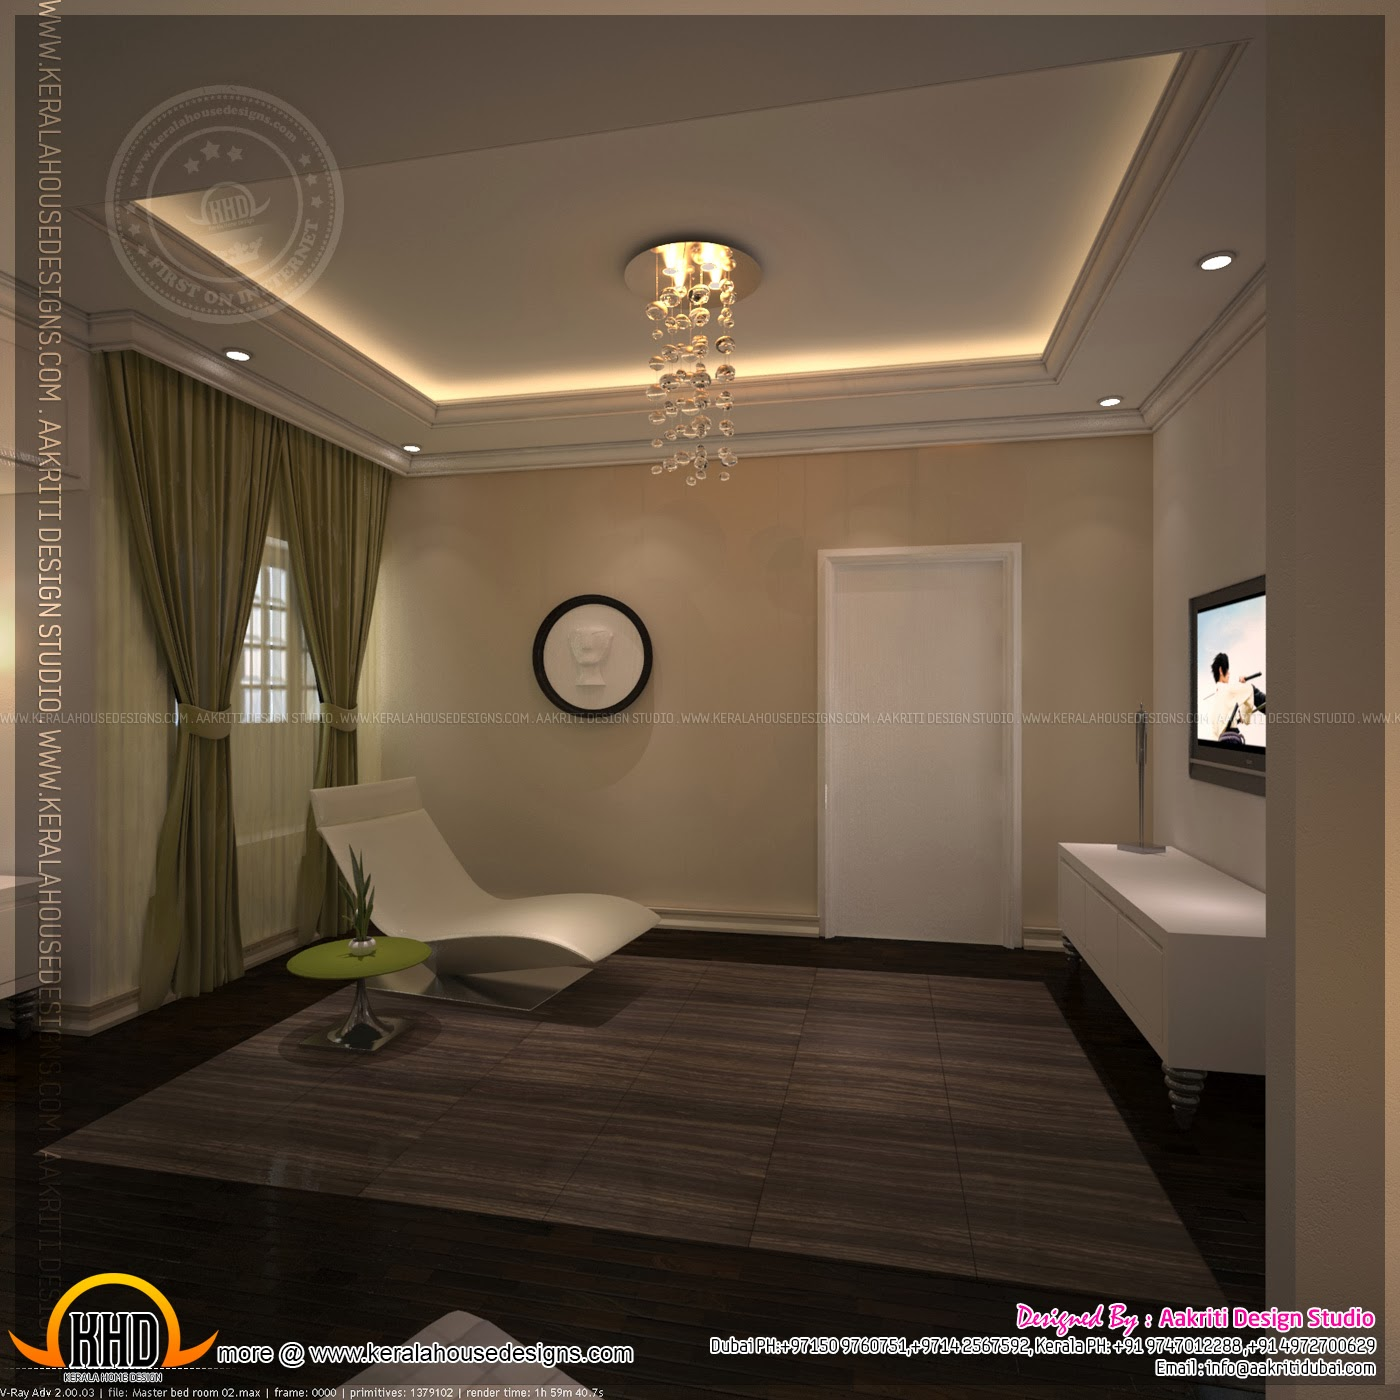 Master bedroom and bathroom interior design kerala home for House interior design bedroom